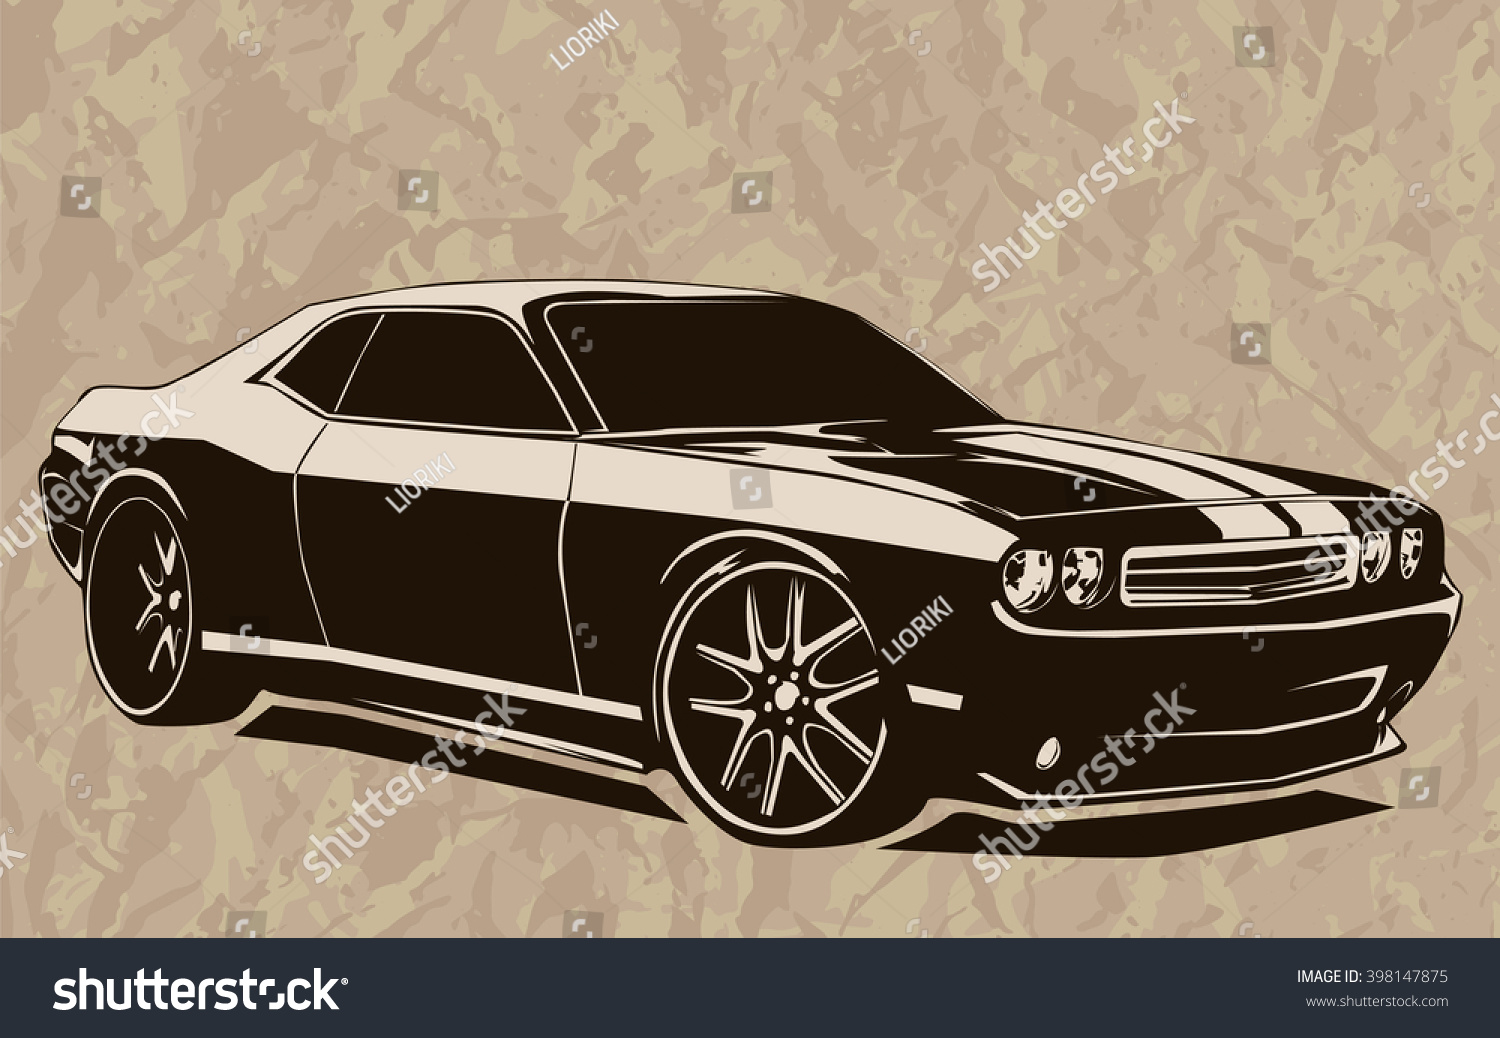 Old School Muscle Cars Inspired Cartoon Stock Vector 398147875 ...